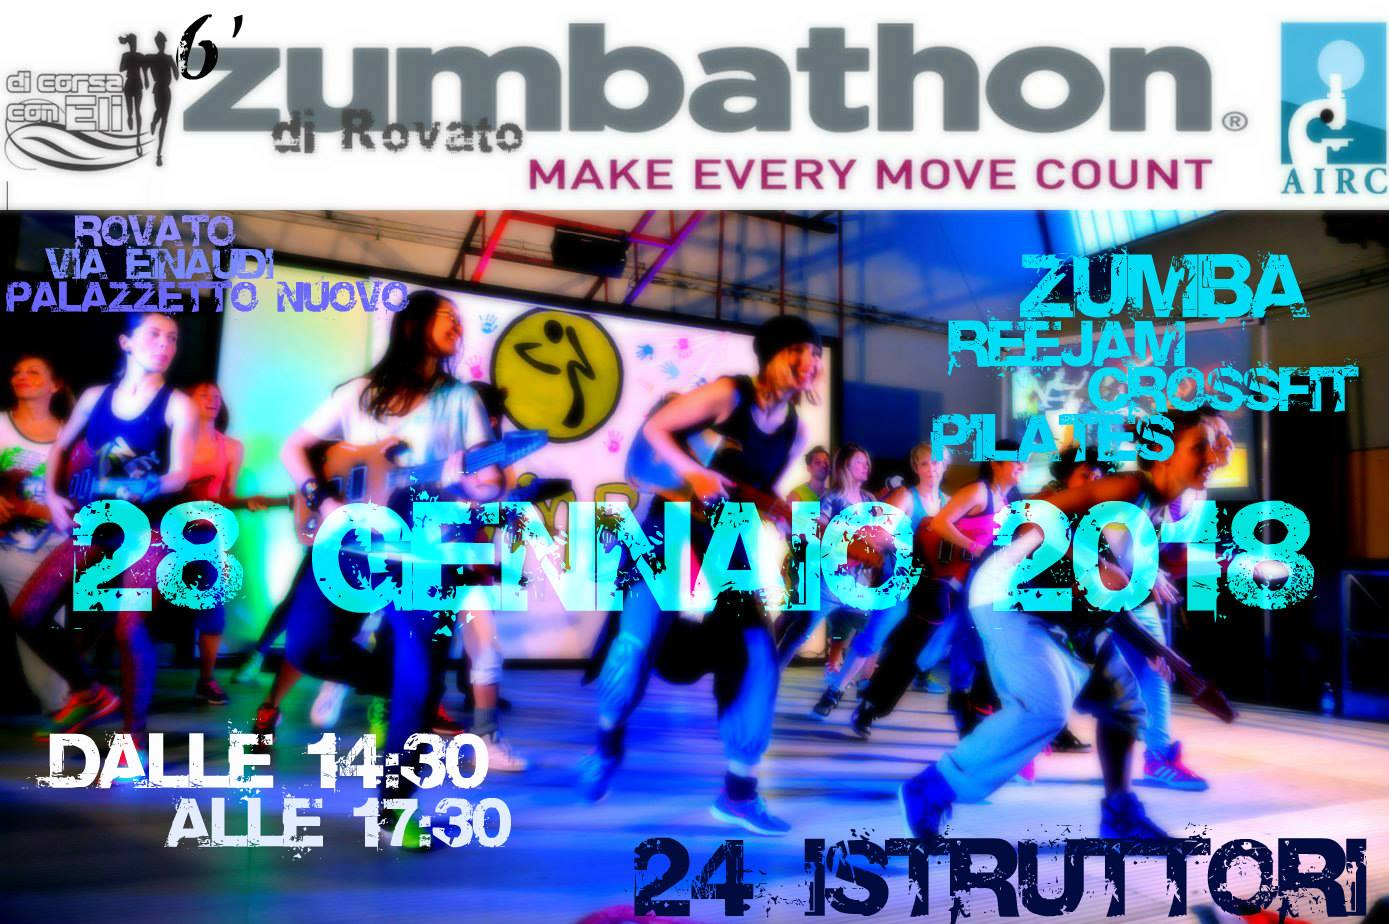 https://www.breakmagazinenews.it/wp-content/uploads/2018/01/2018-ZUMBATON-ROVATO.jpg